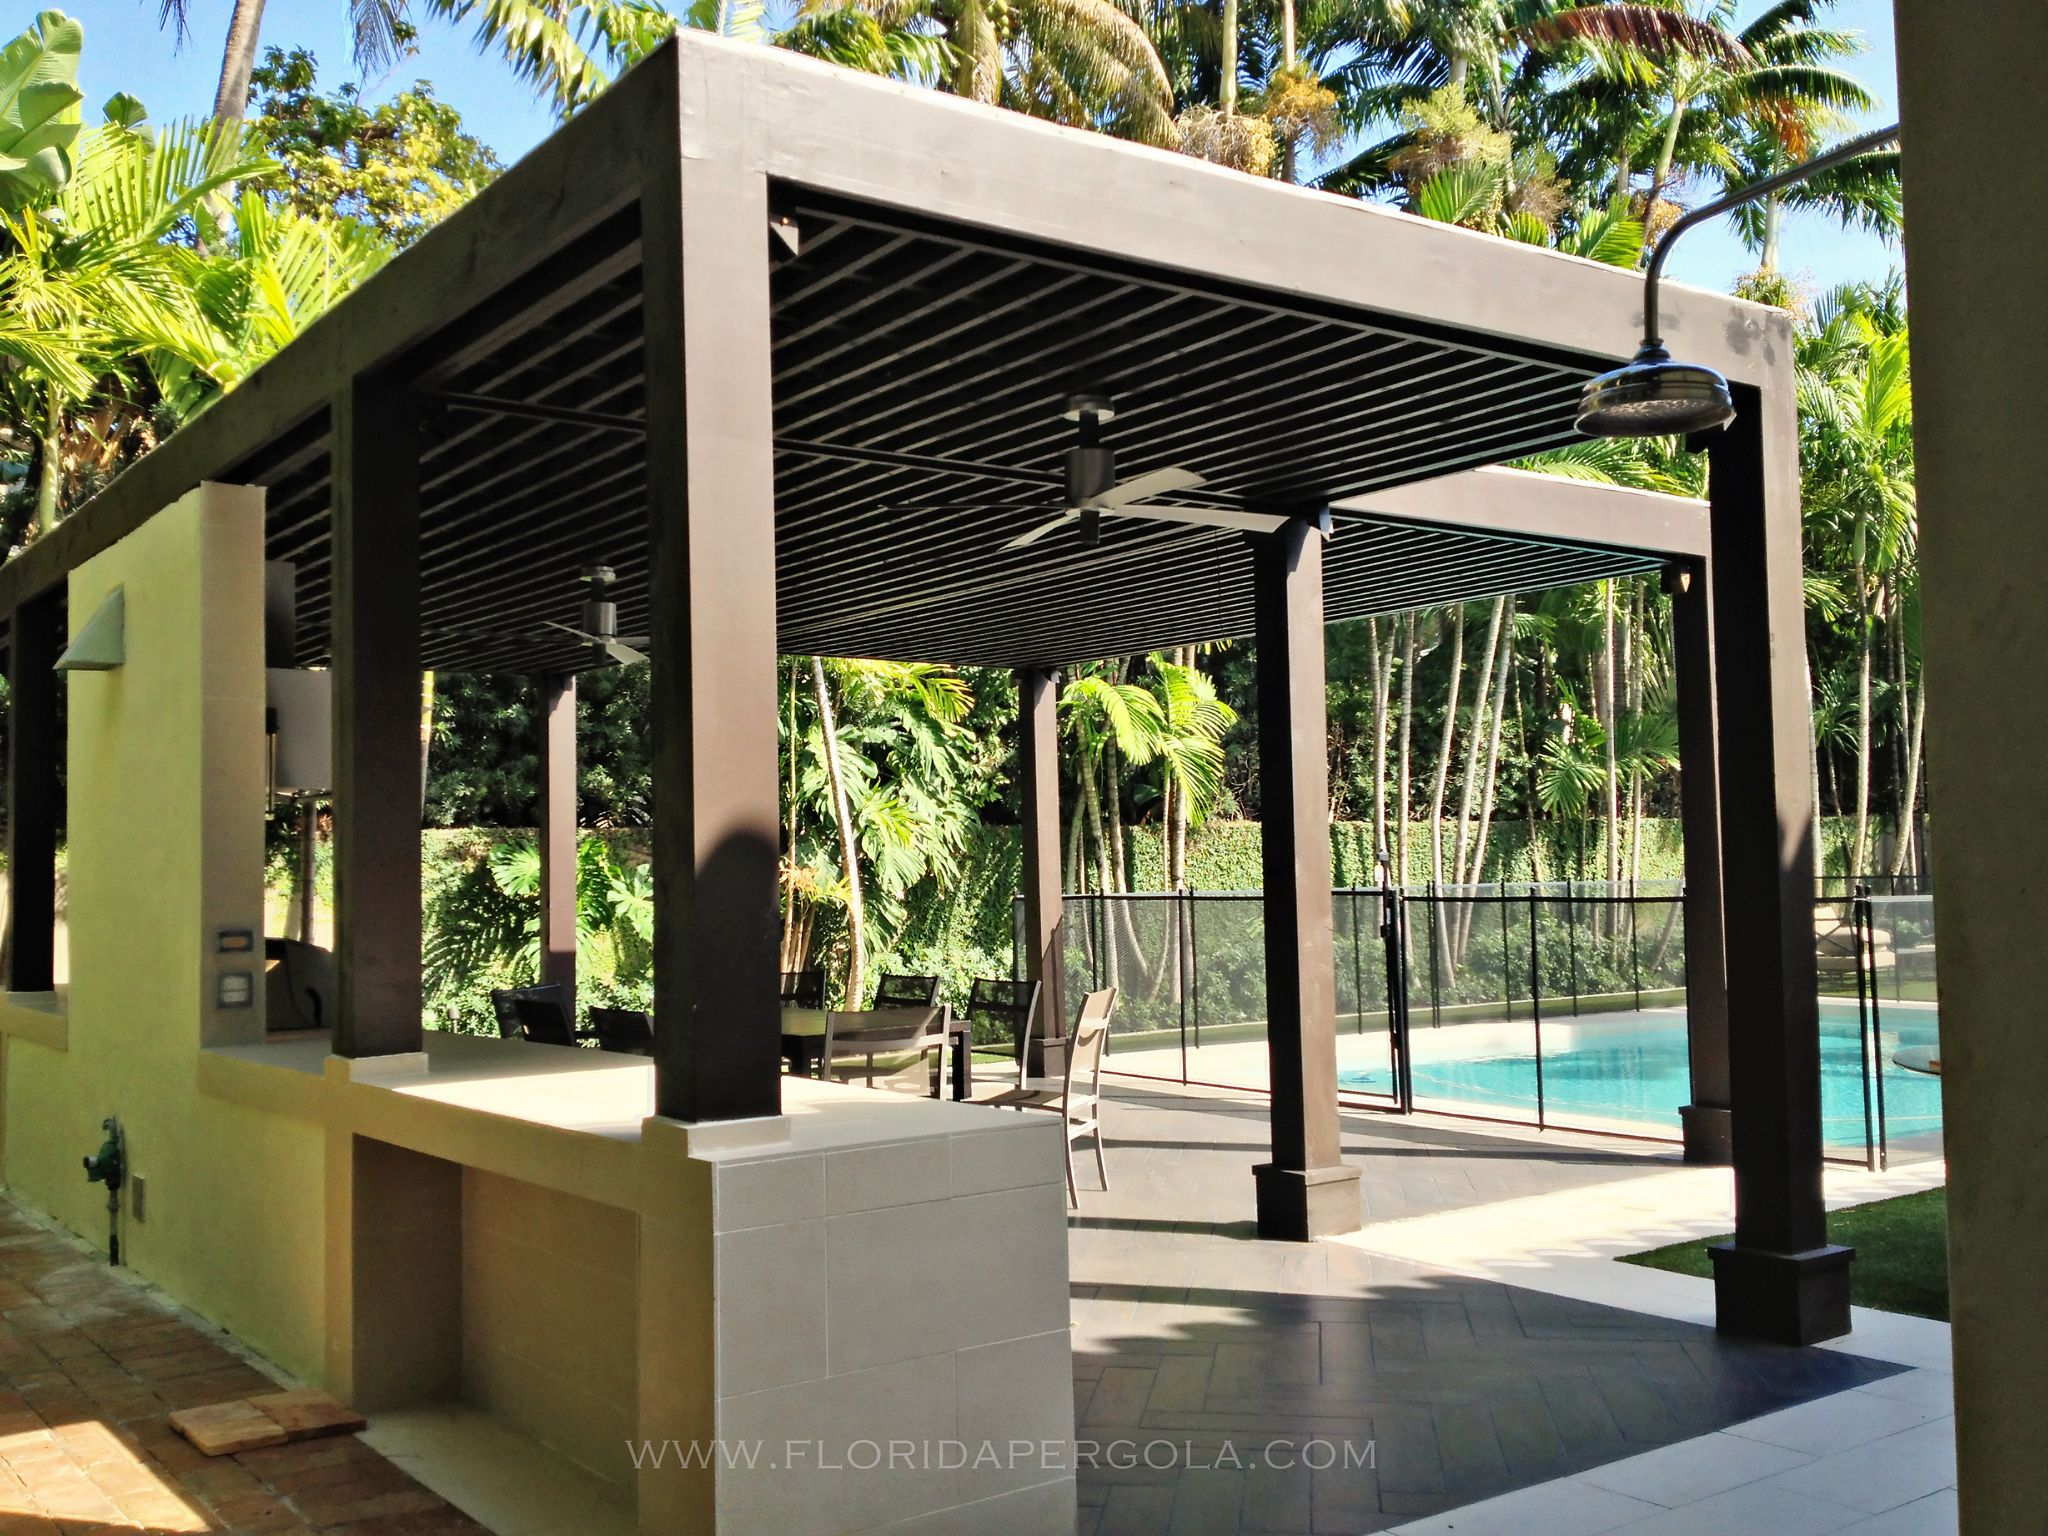 Florida pergola specializing in landscape structures for Exterior garden designs